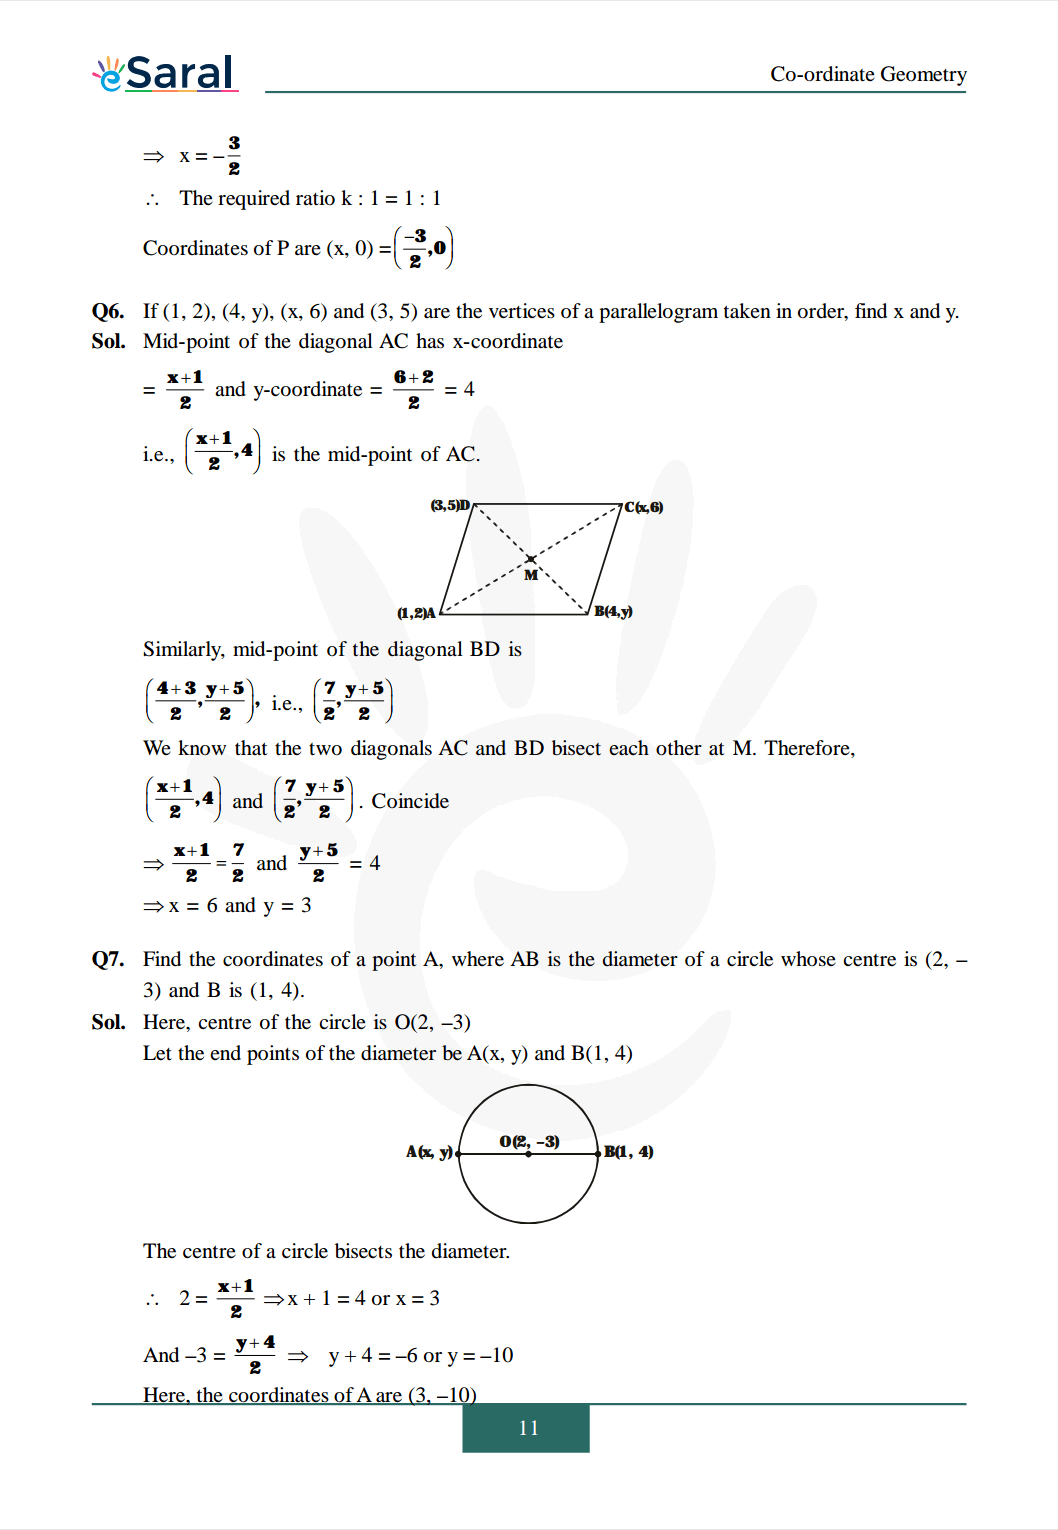 Class 10 Maths Chapter 7 exercise 7.2 solutions Image 4